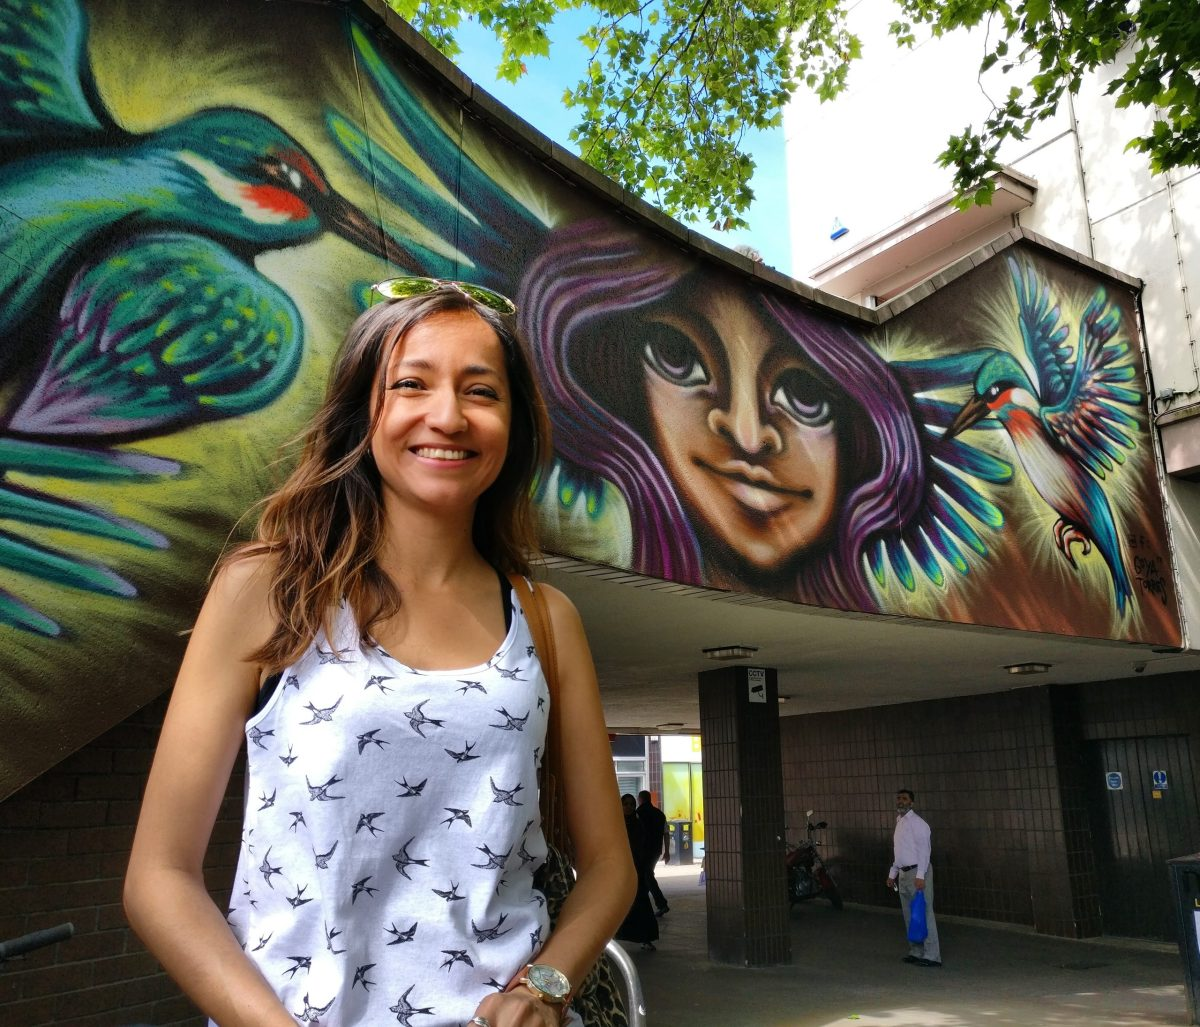 Open Walls Festival brings Street Art to Blackburn